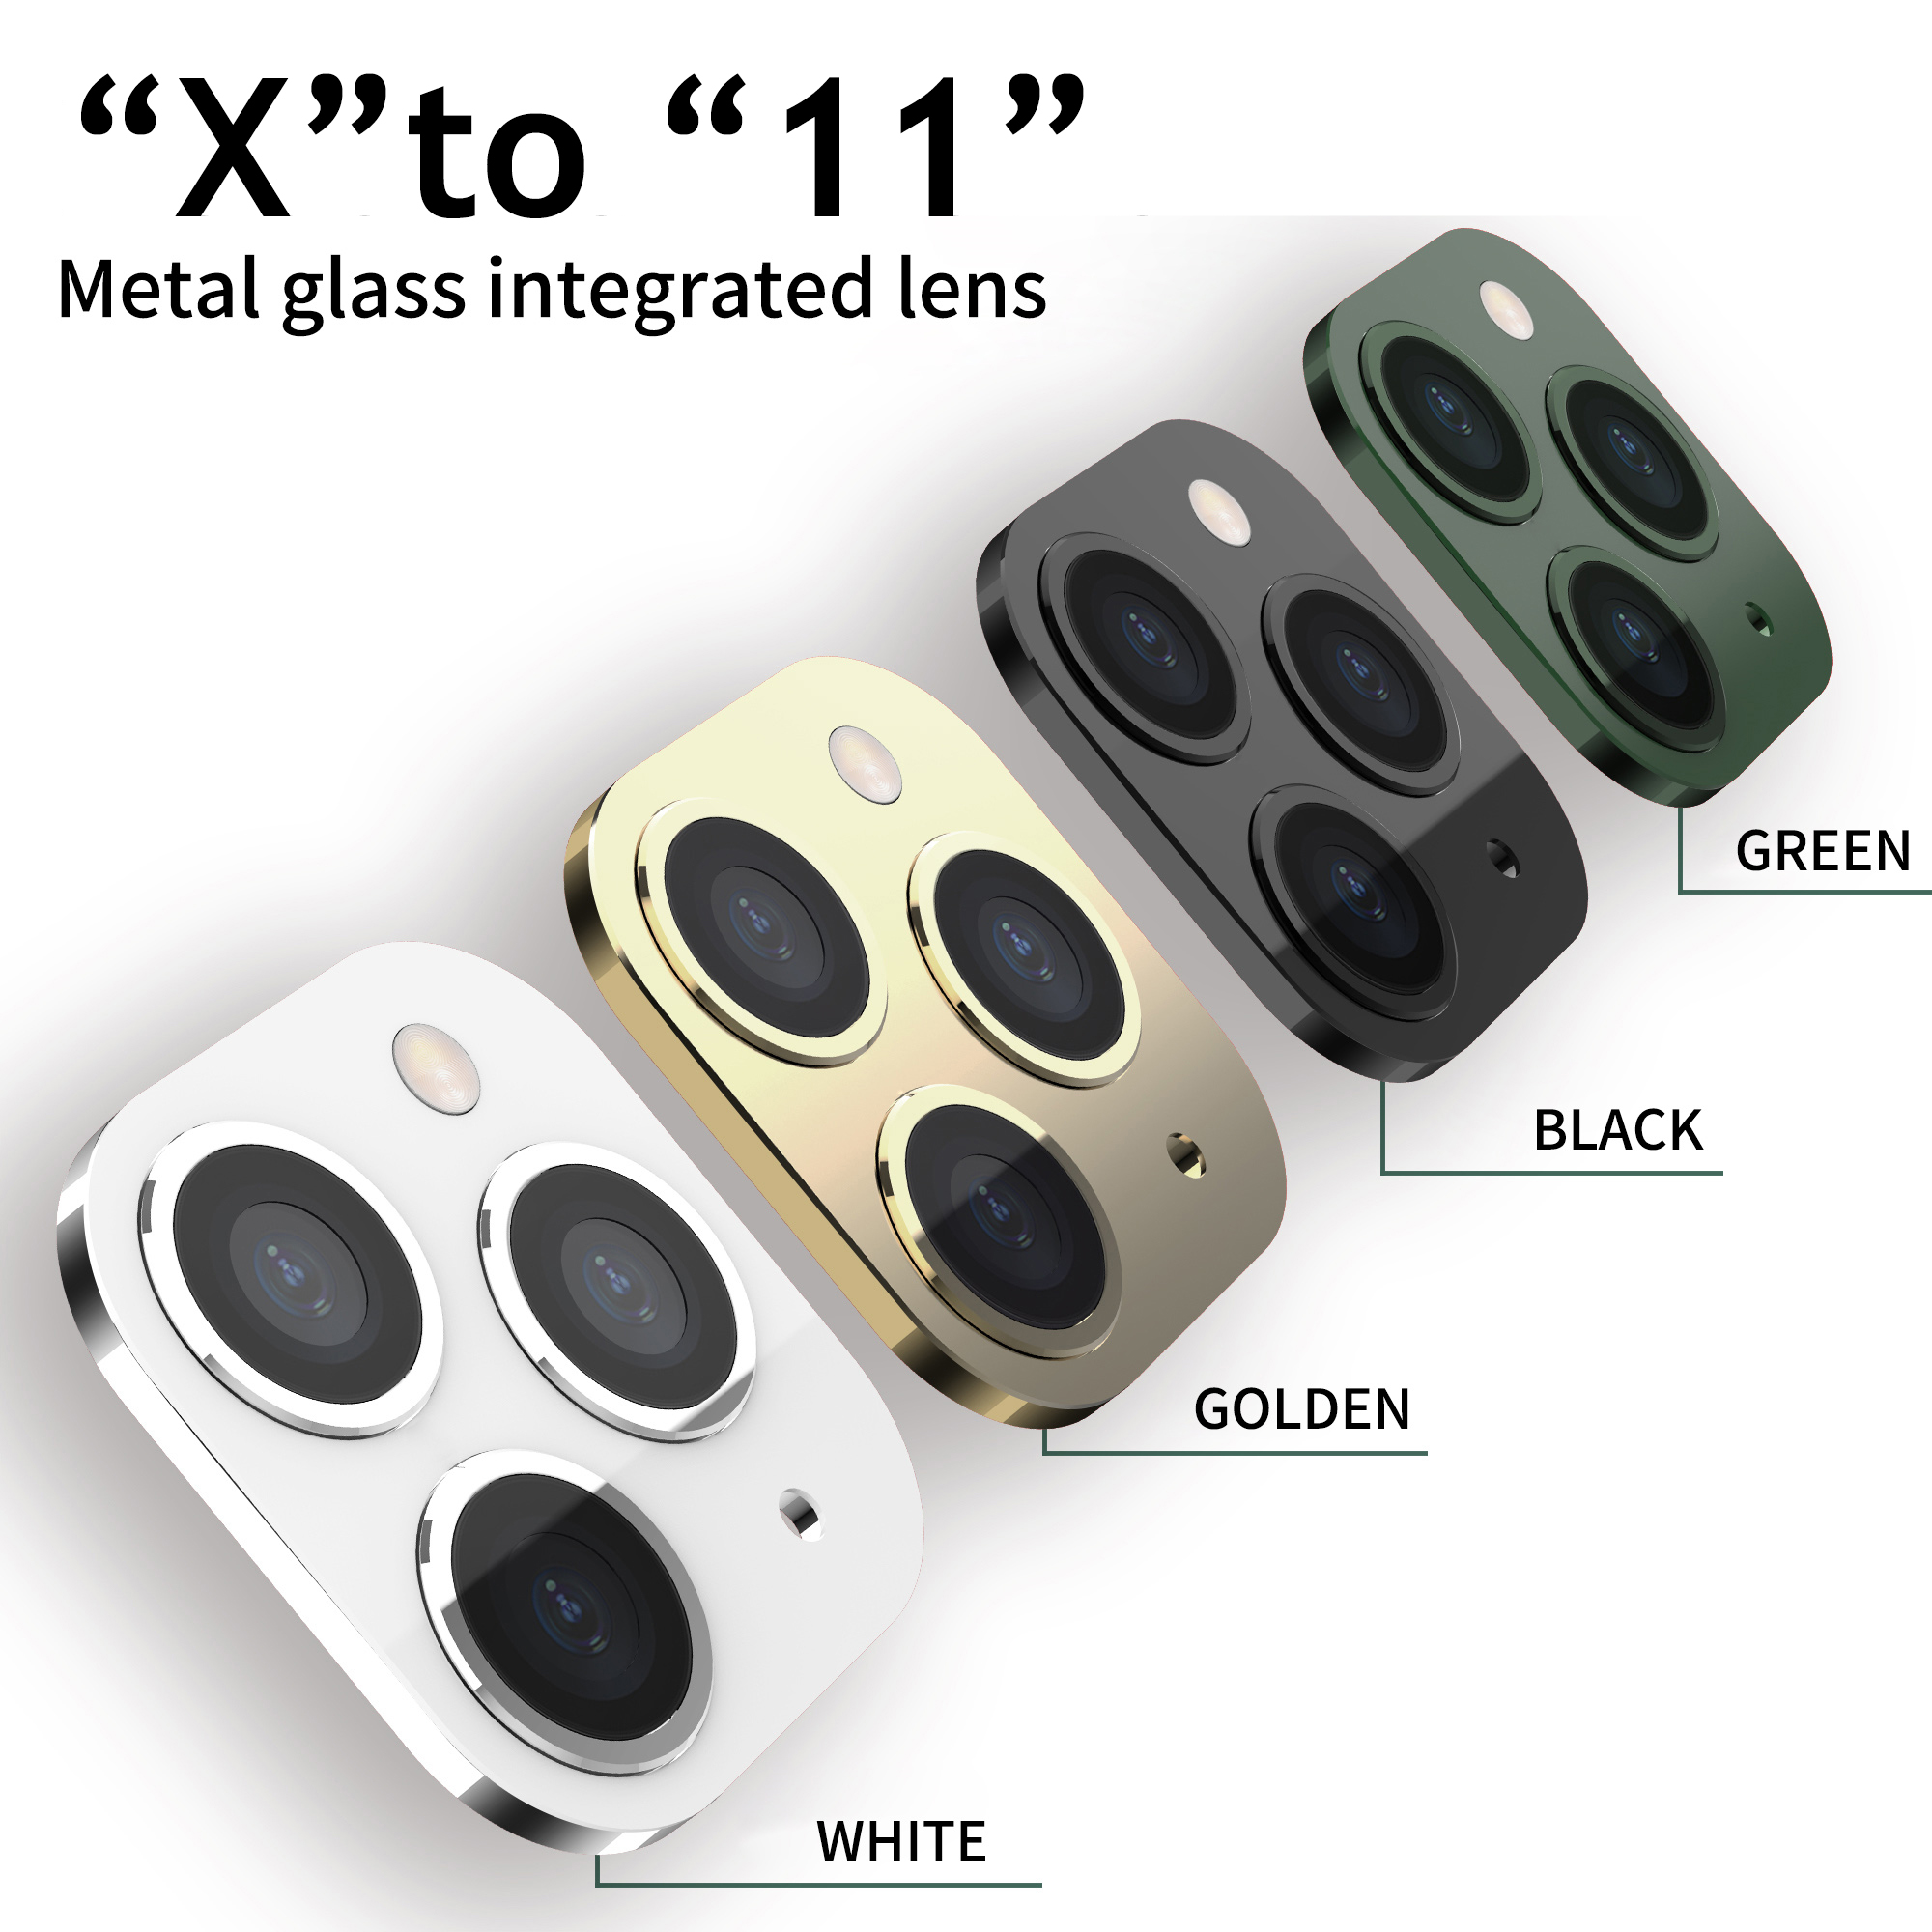 Image 2 - 3D Fake Rear Camera Lens Sticker For iPhone X XS Max Seconds Change To 11 Pro Max XR Modified iPhone11 Metal Back Protector Film on